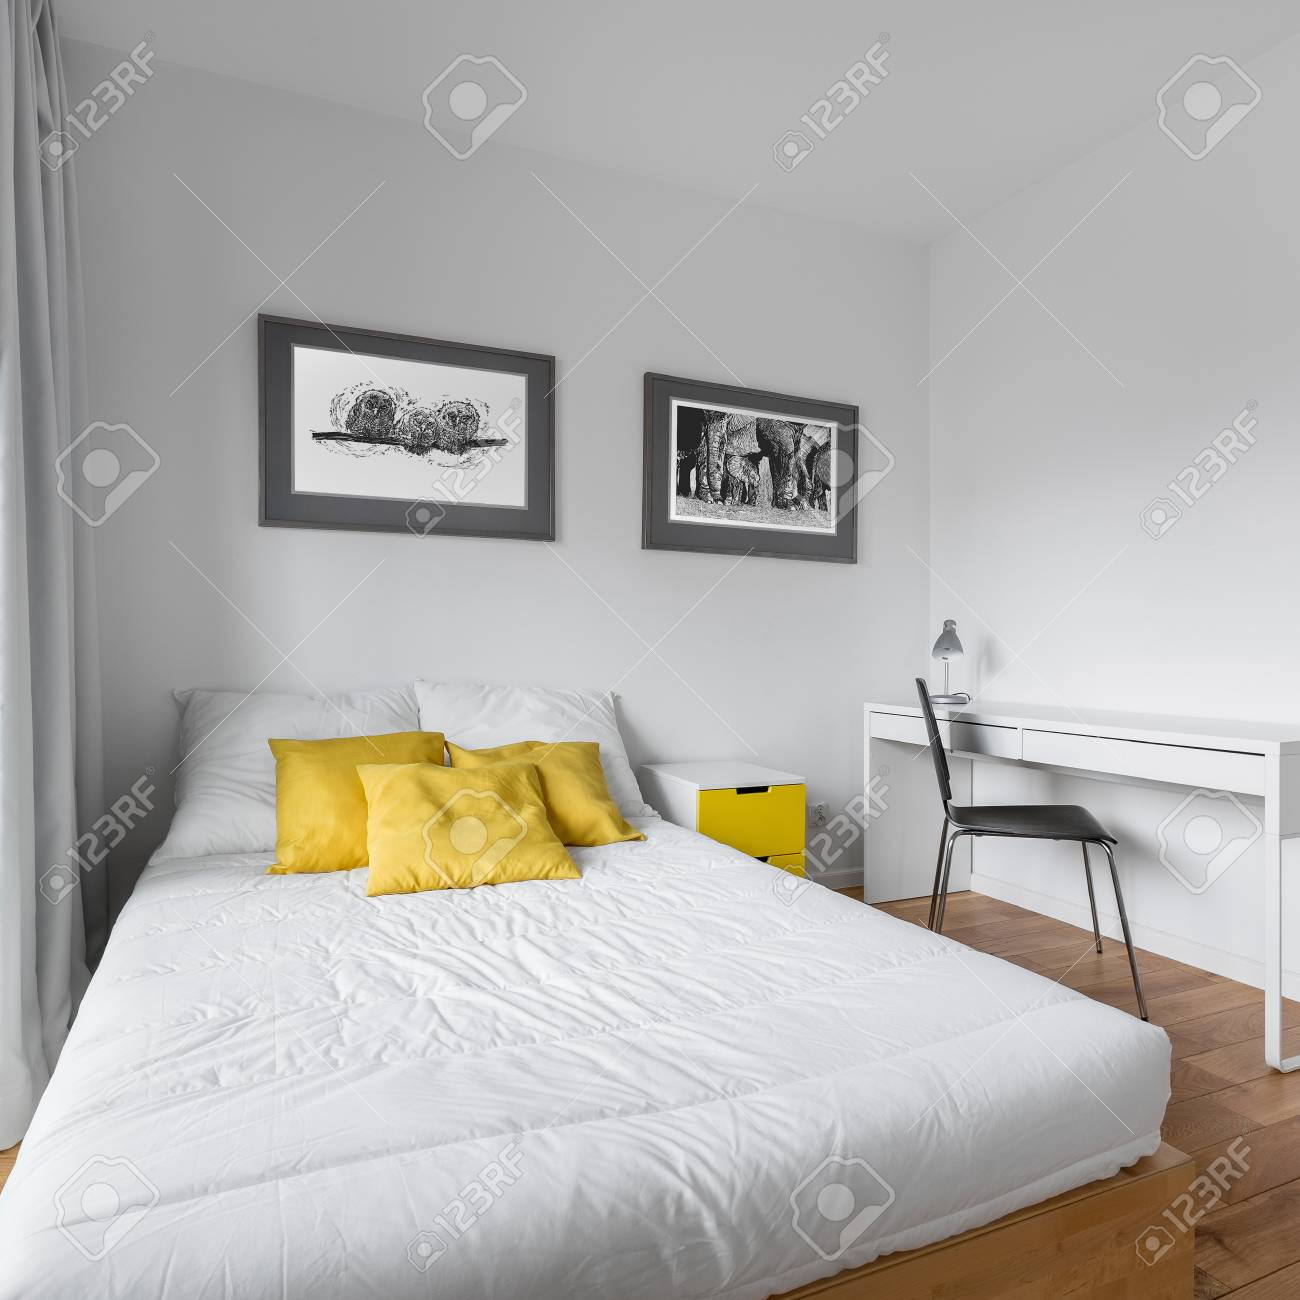 Cozy White Bedroom With Big Twin Size Bed And Yellow Accessories Stock Photo Picture And Royalty Free Image Image 96855841